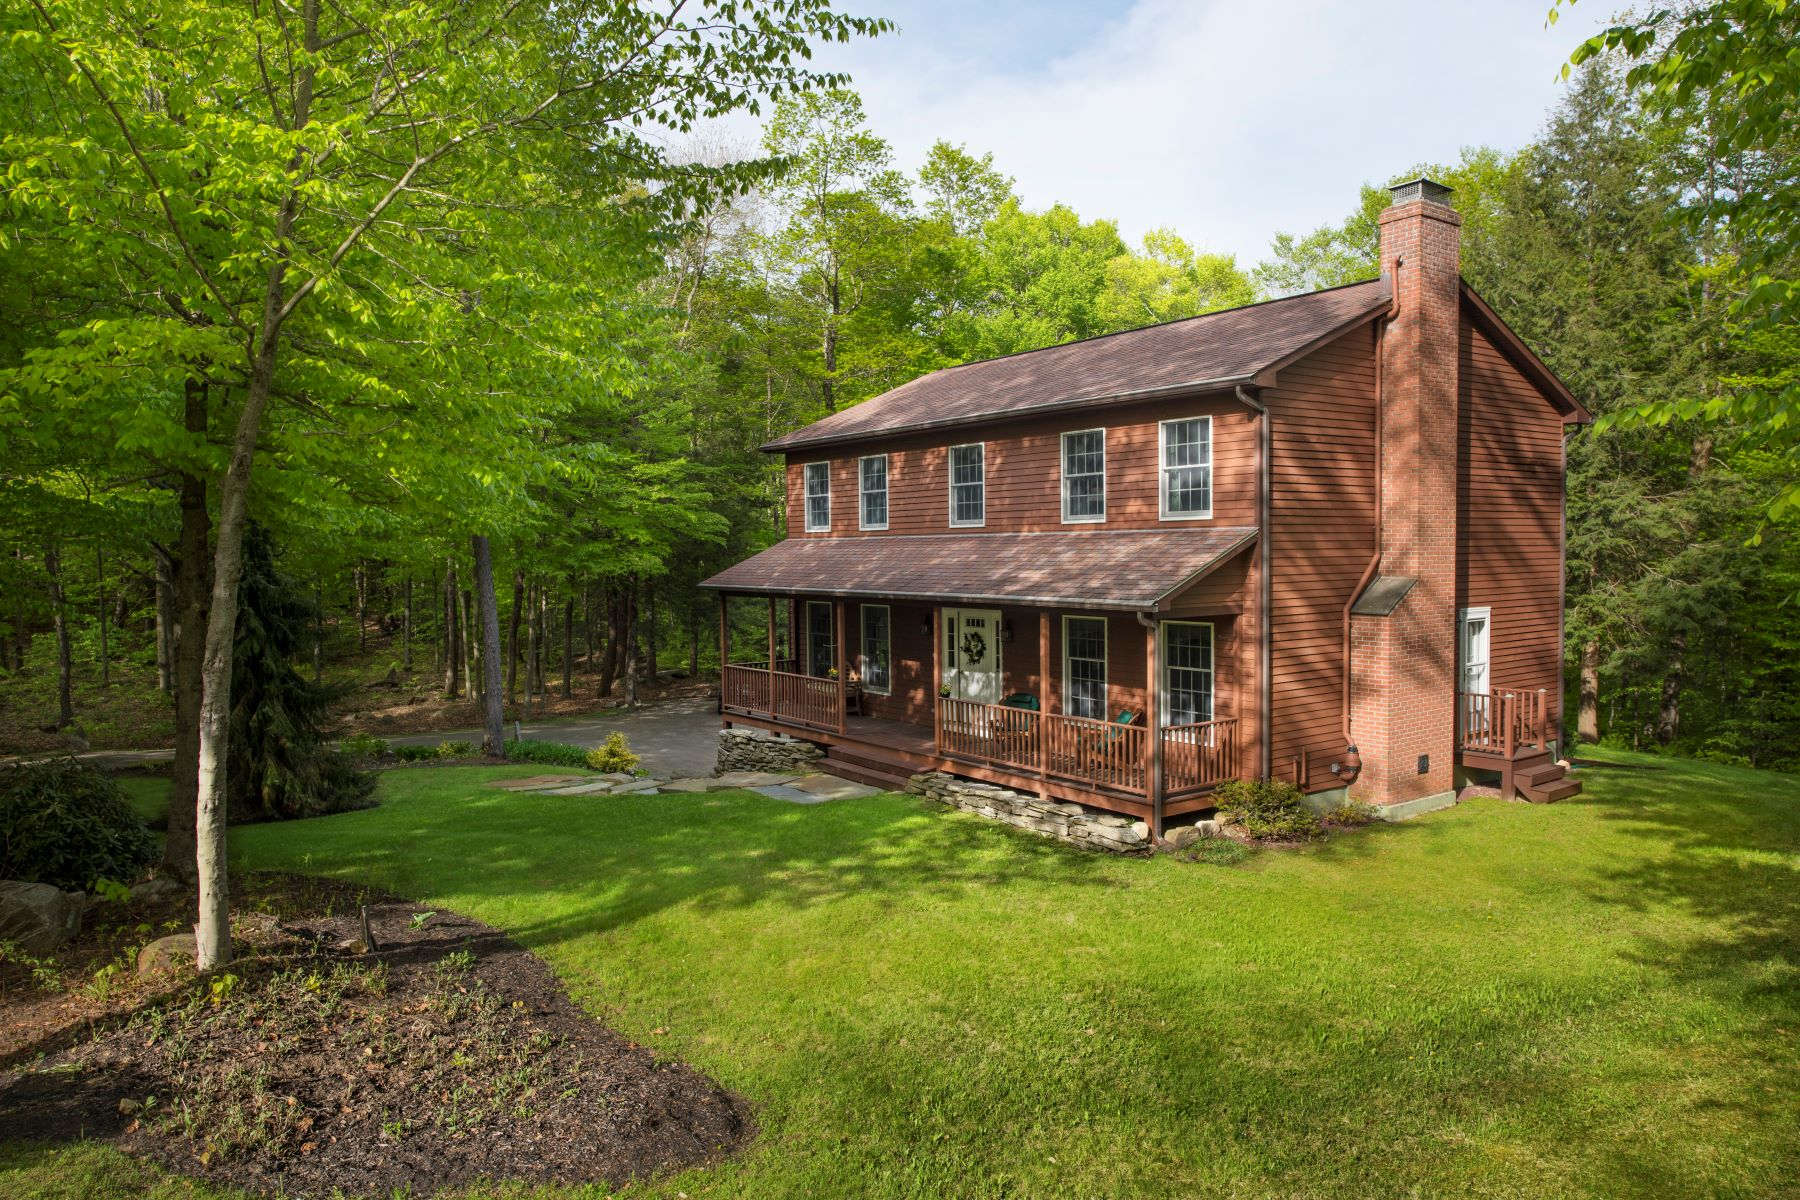 Single Family Home for Active at Picturesque Monterey Colonial 10 Heron Pond Park Monterey, Massachusetts 01245 United States